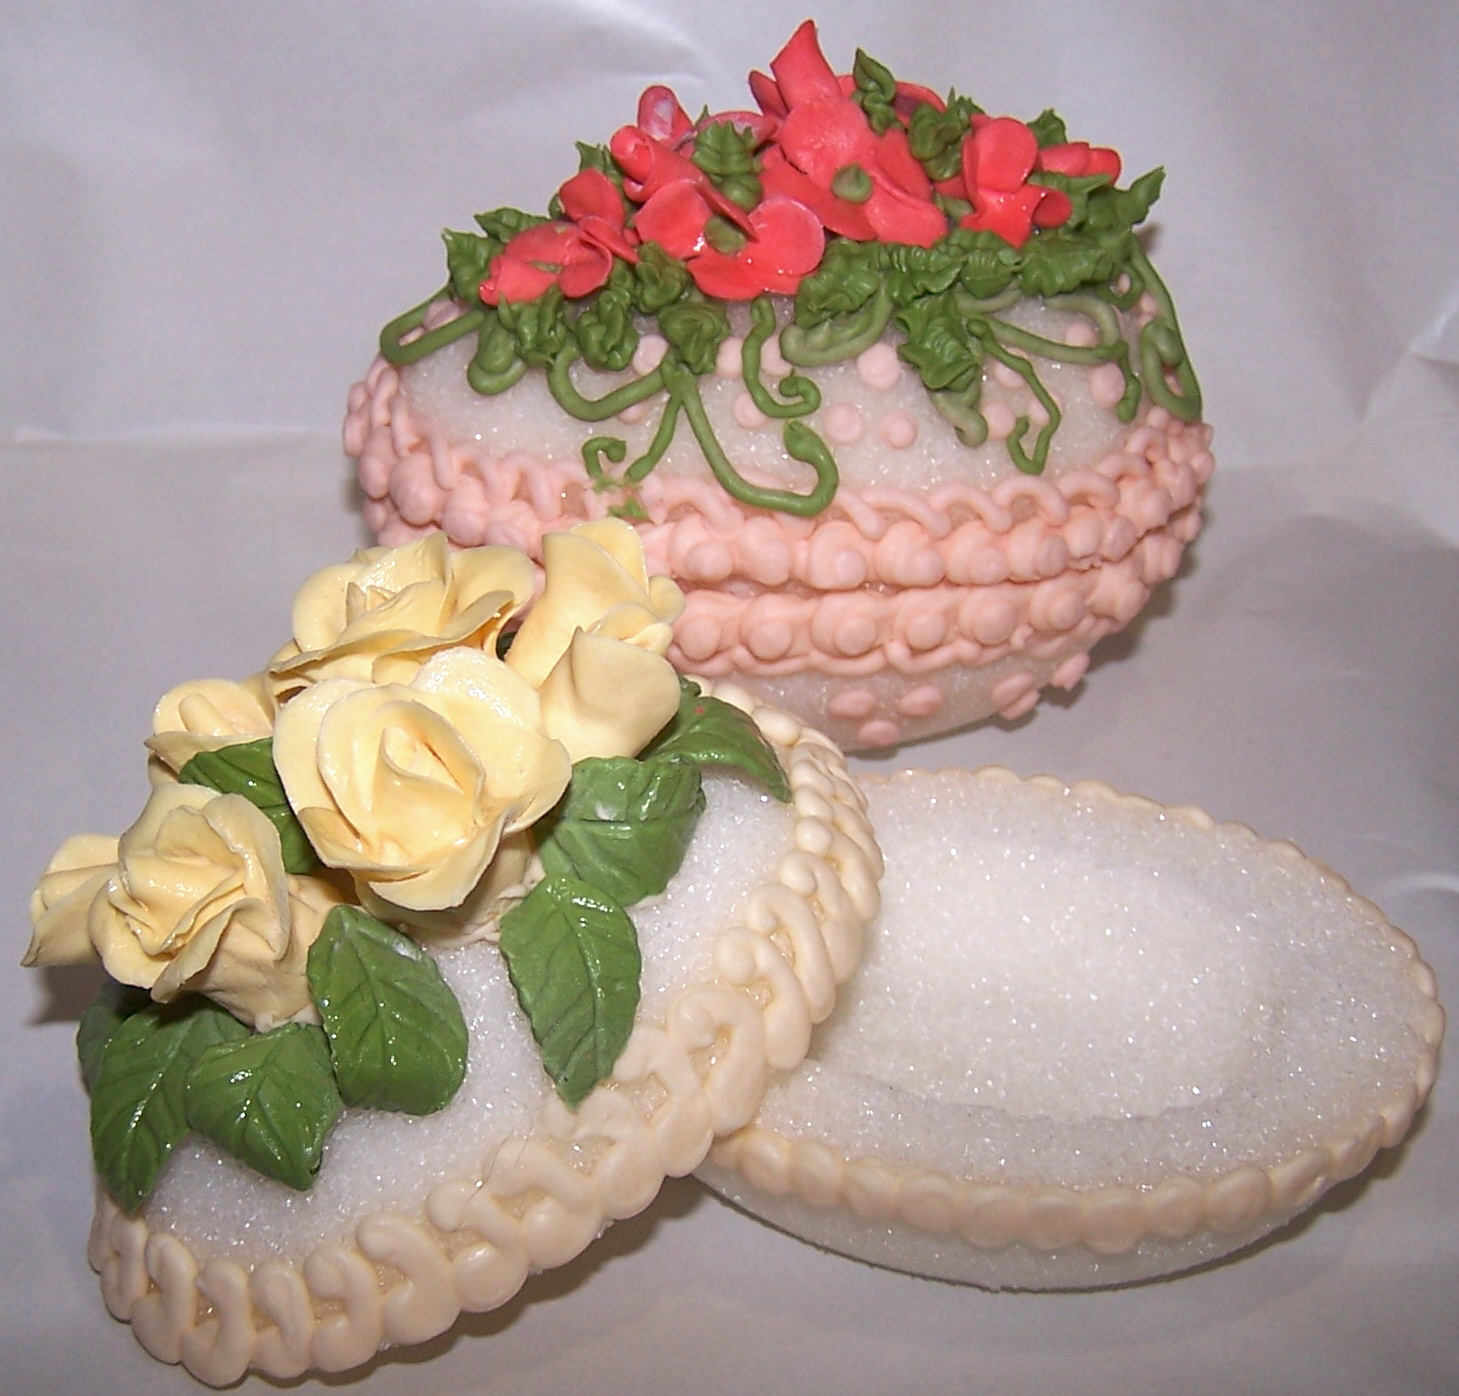 Truly Scrumptious Desserts By Joanne: Decorated Sugar Eggs